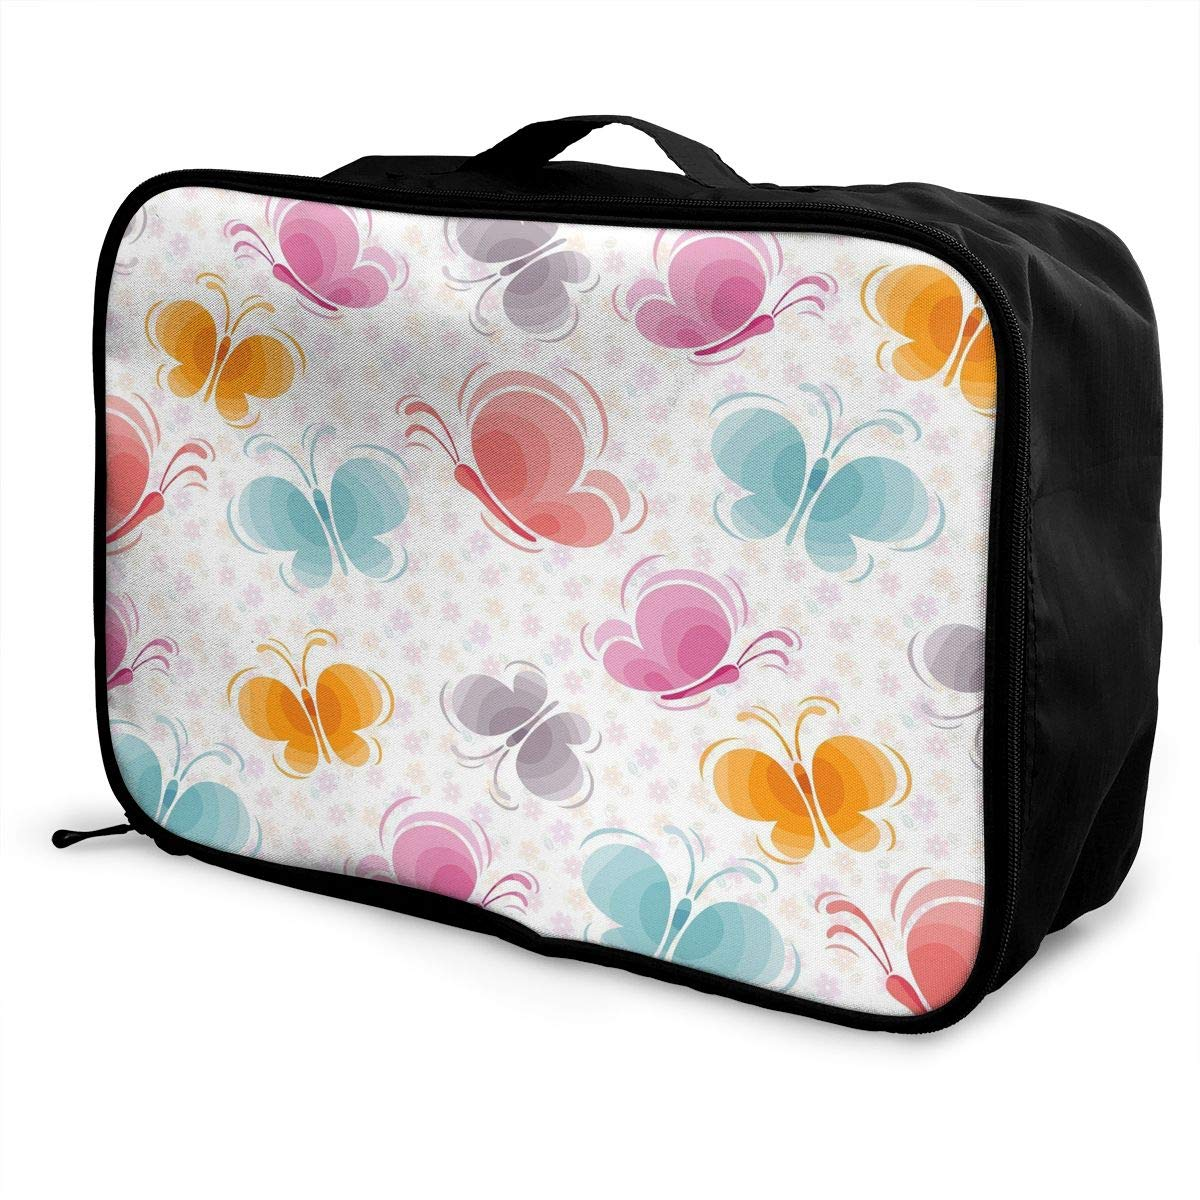 Travel Luggage Duffle Bag Lightweight Portable Handbag Colorful Butterfly Print Large Capacity Waterproof Foldable Storage Tote